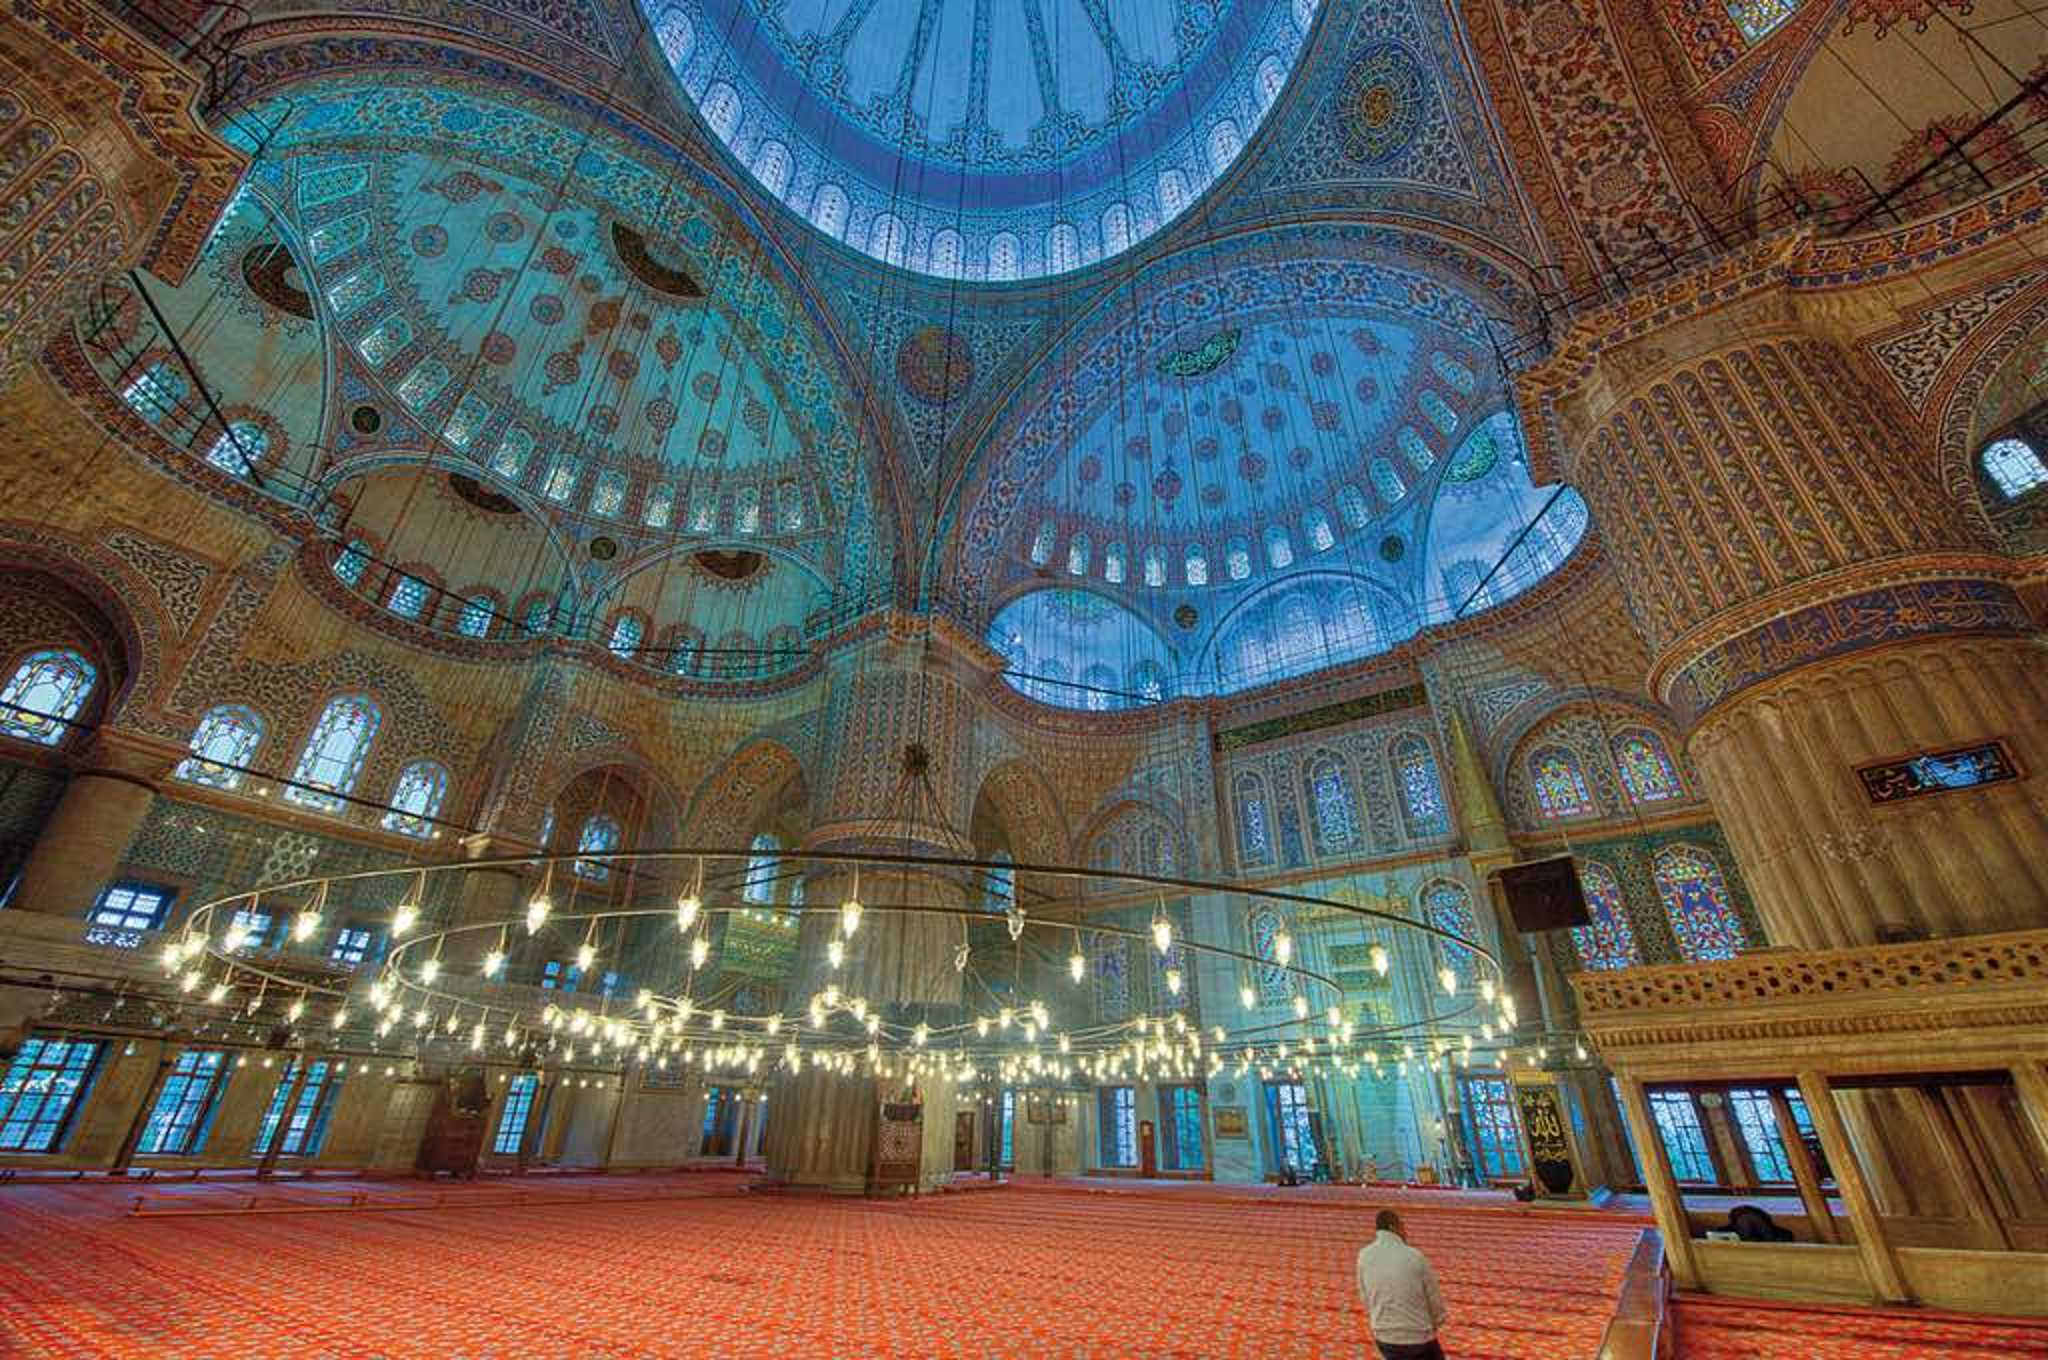 The interior of the Blue Mosque